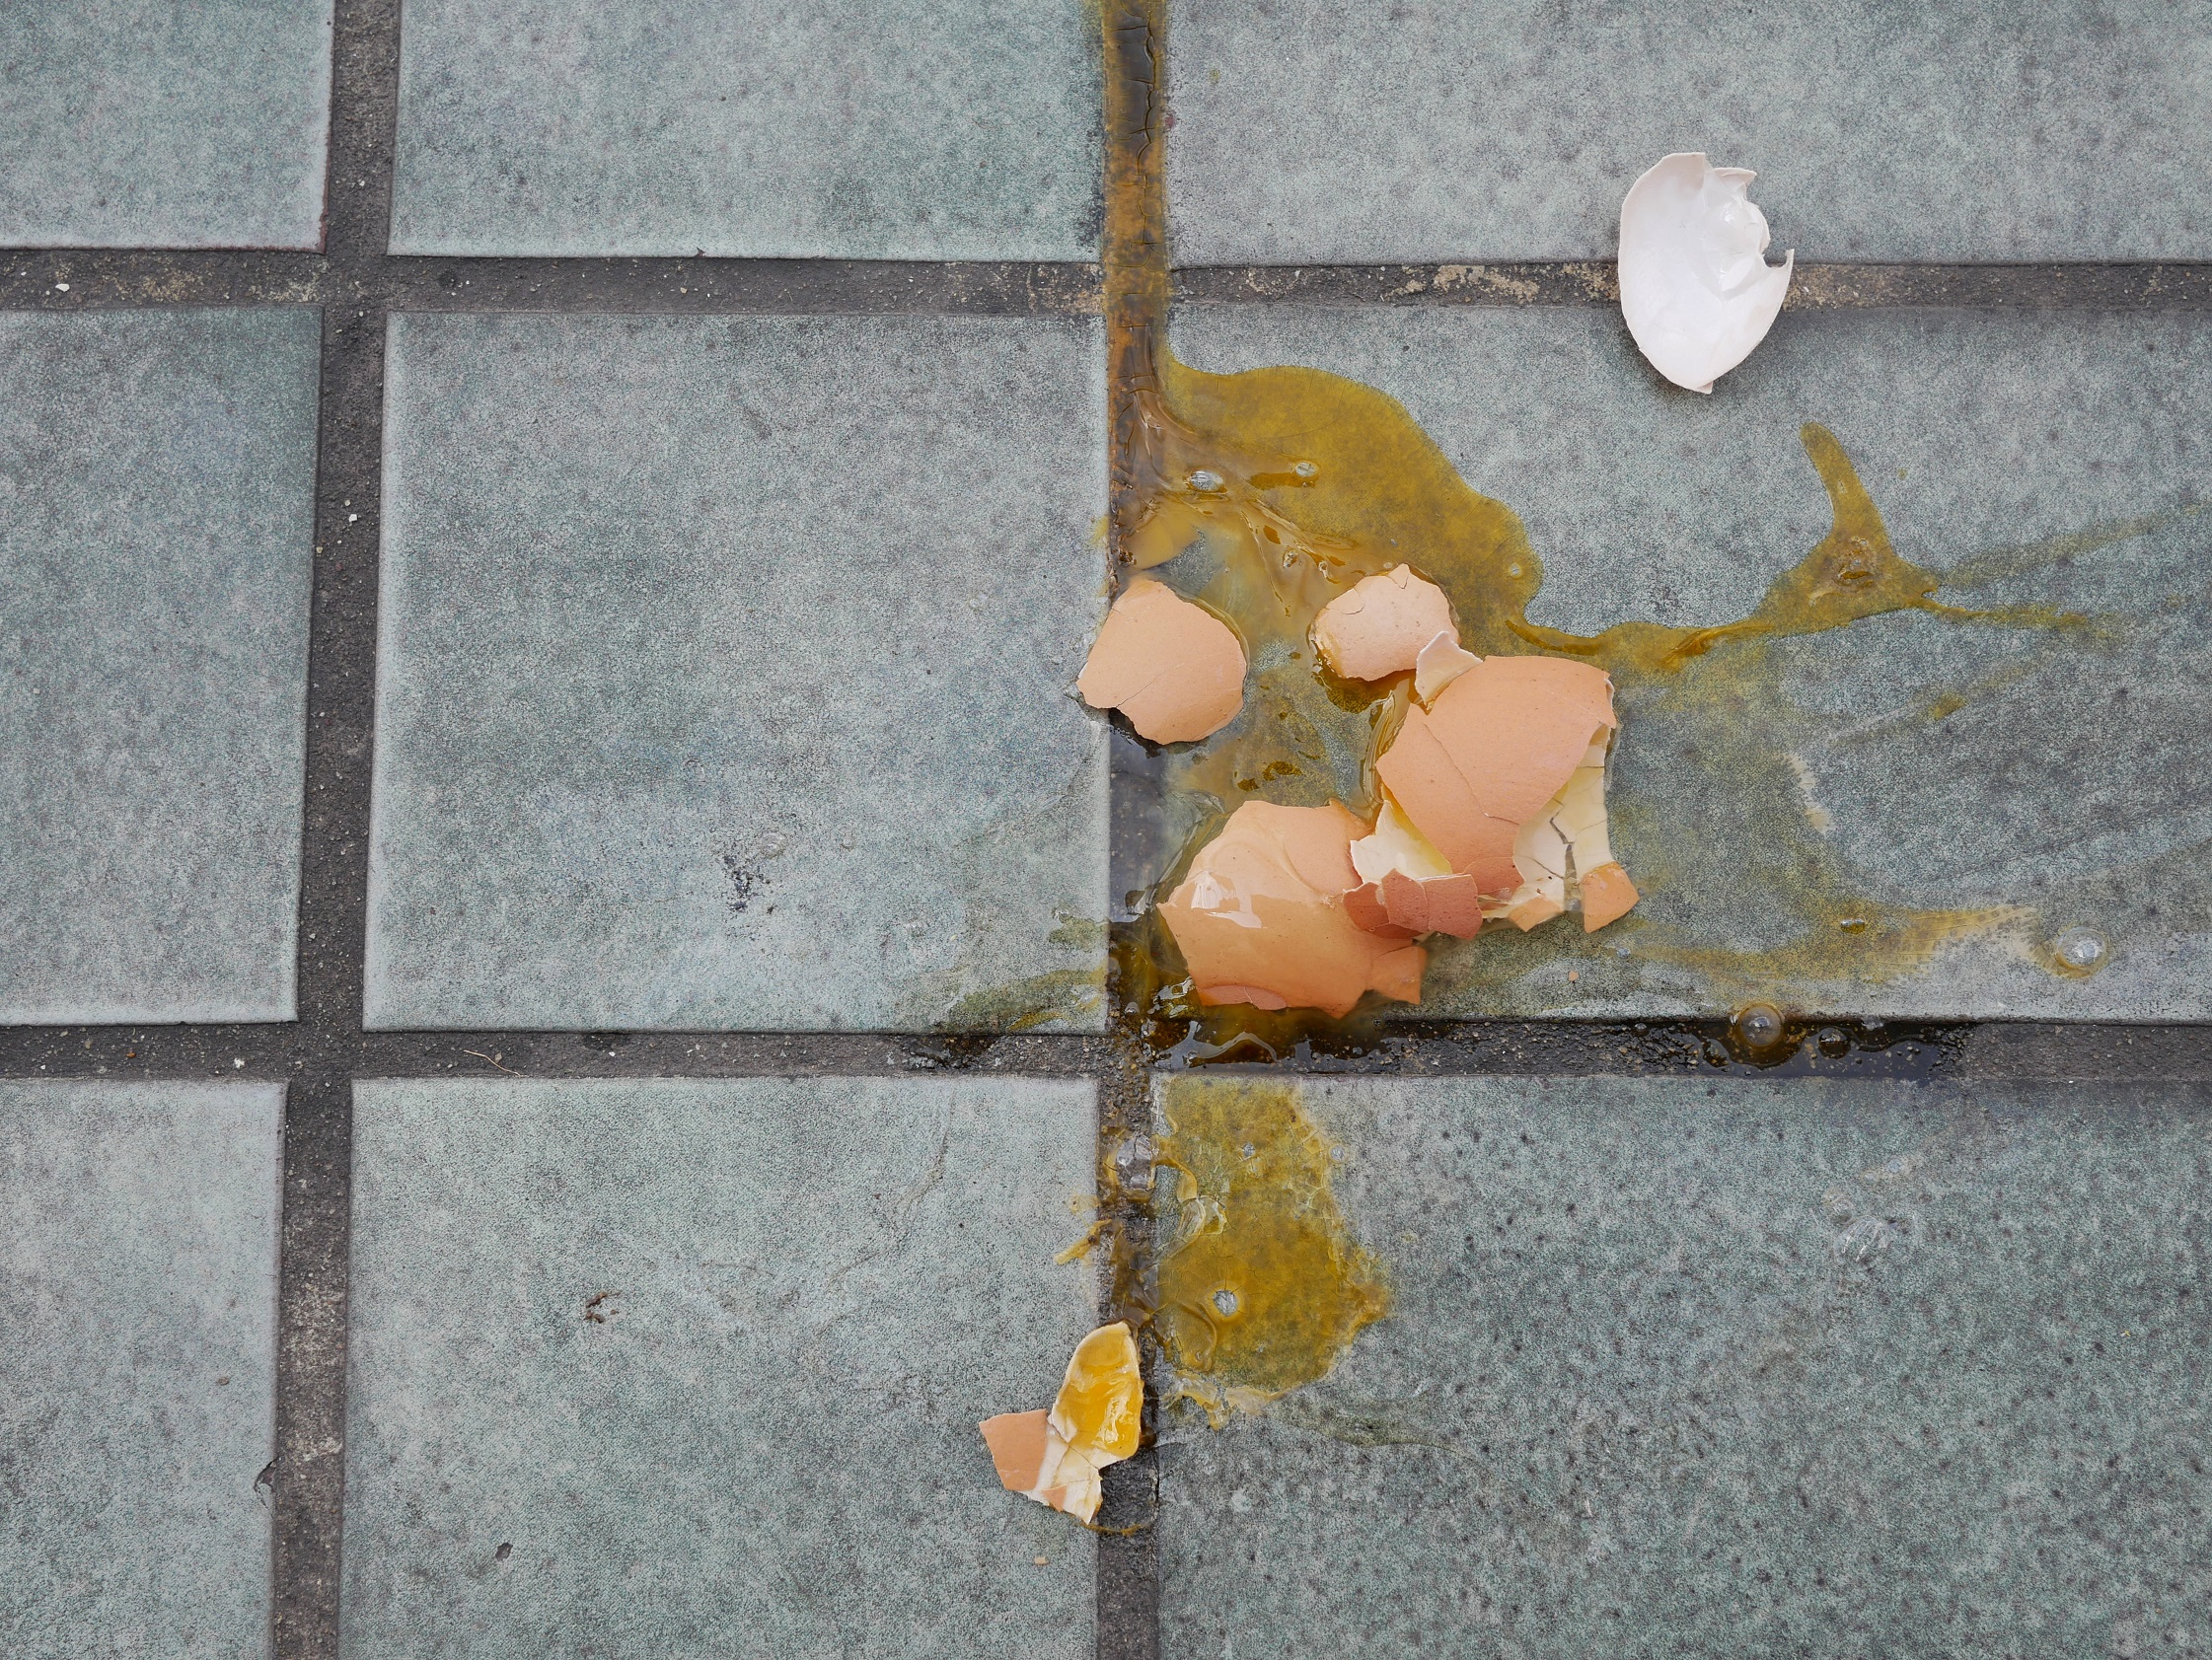 egg smashed on the ground